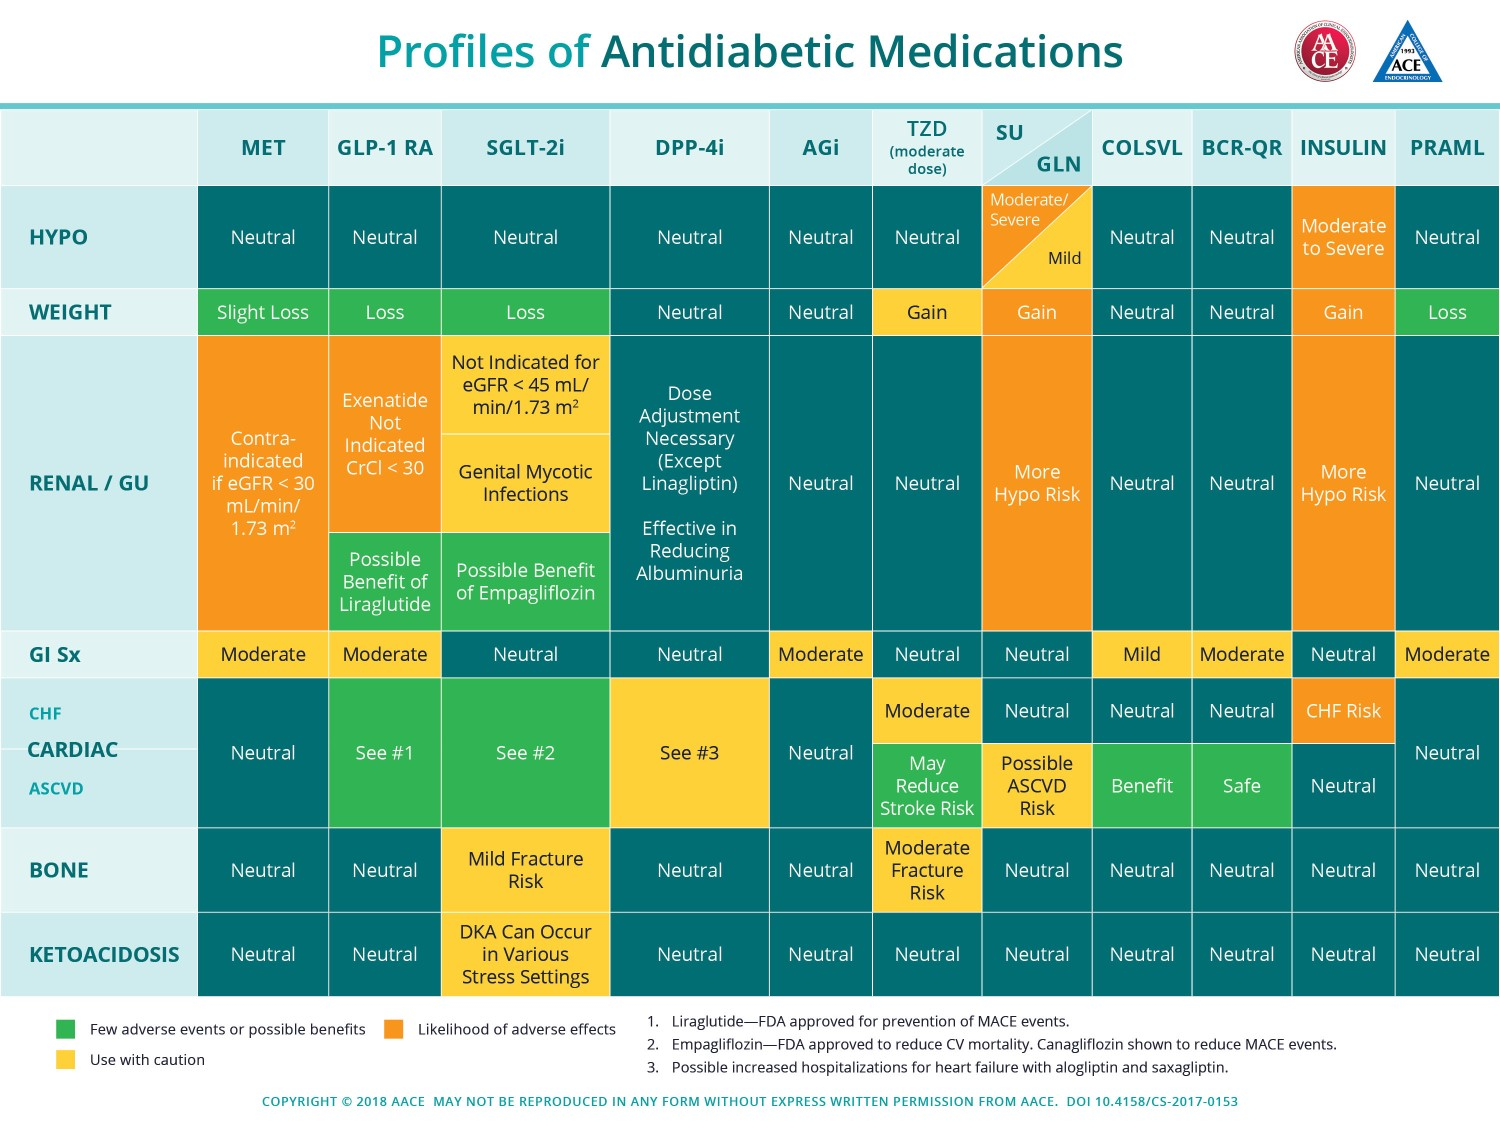 Profiles of Antidiabetic Medications - AACE 2018  